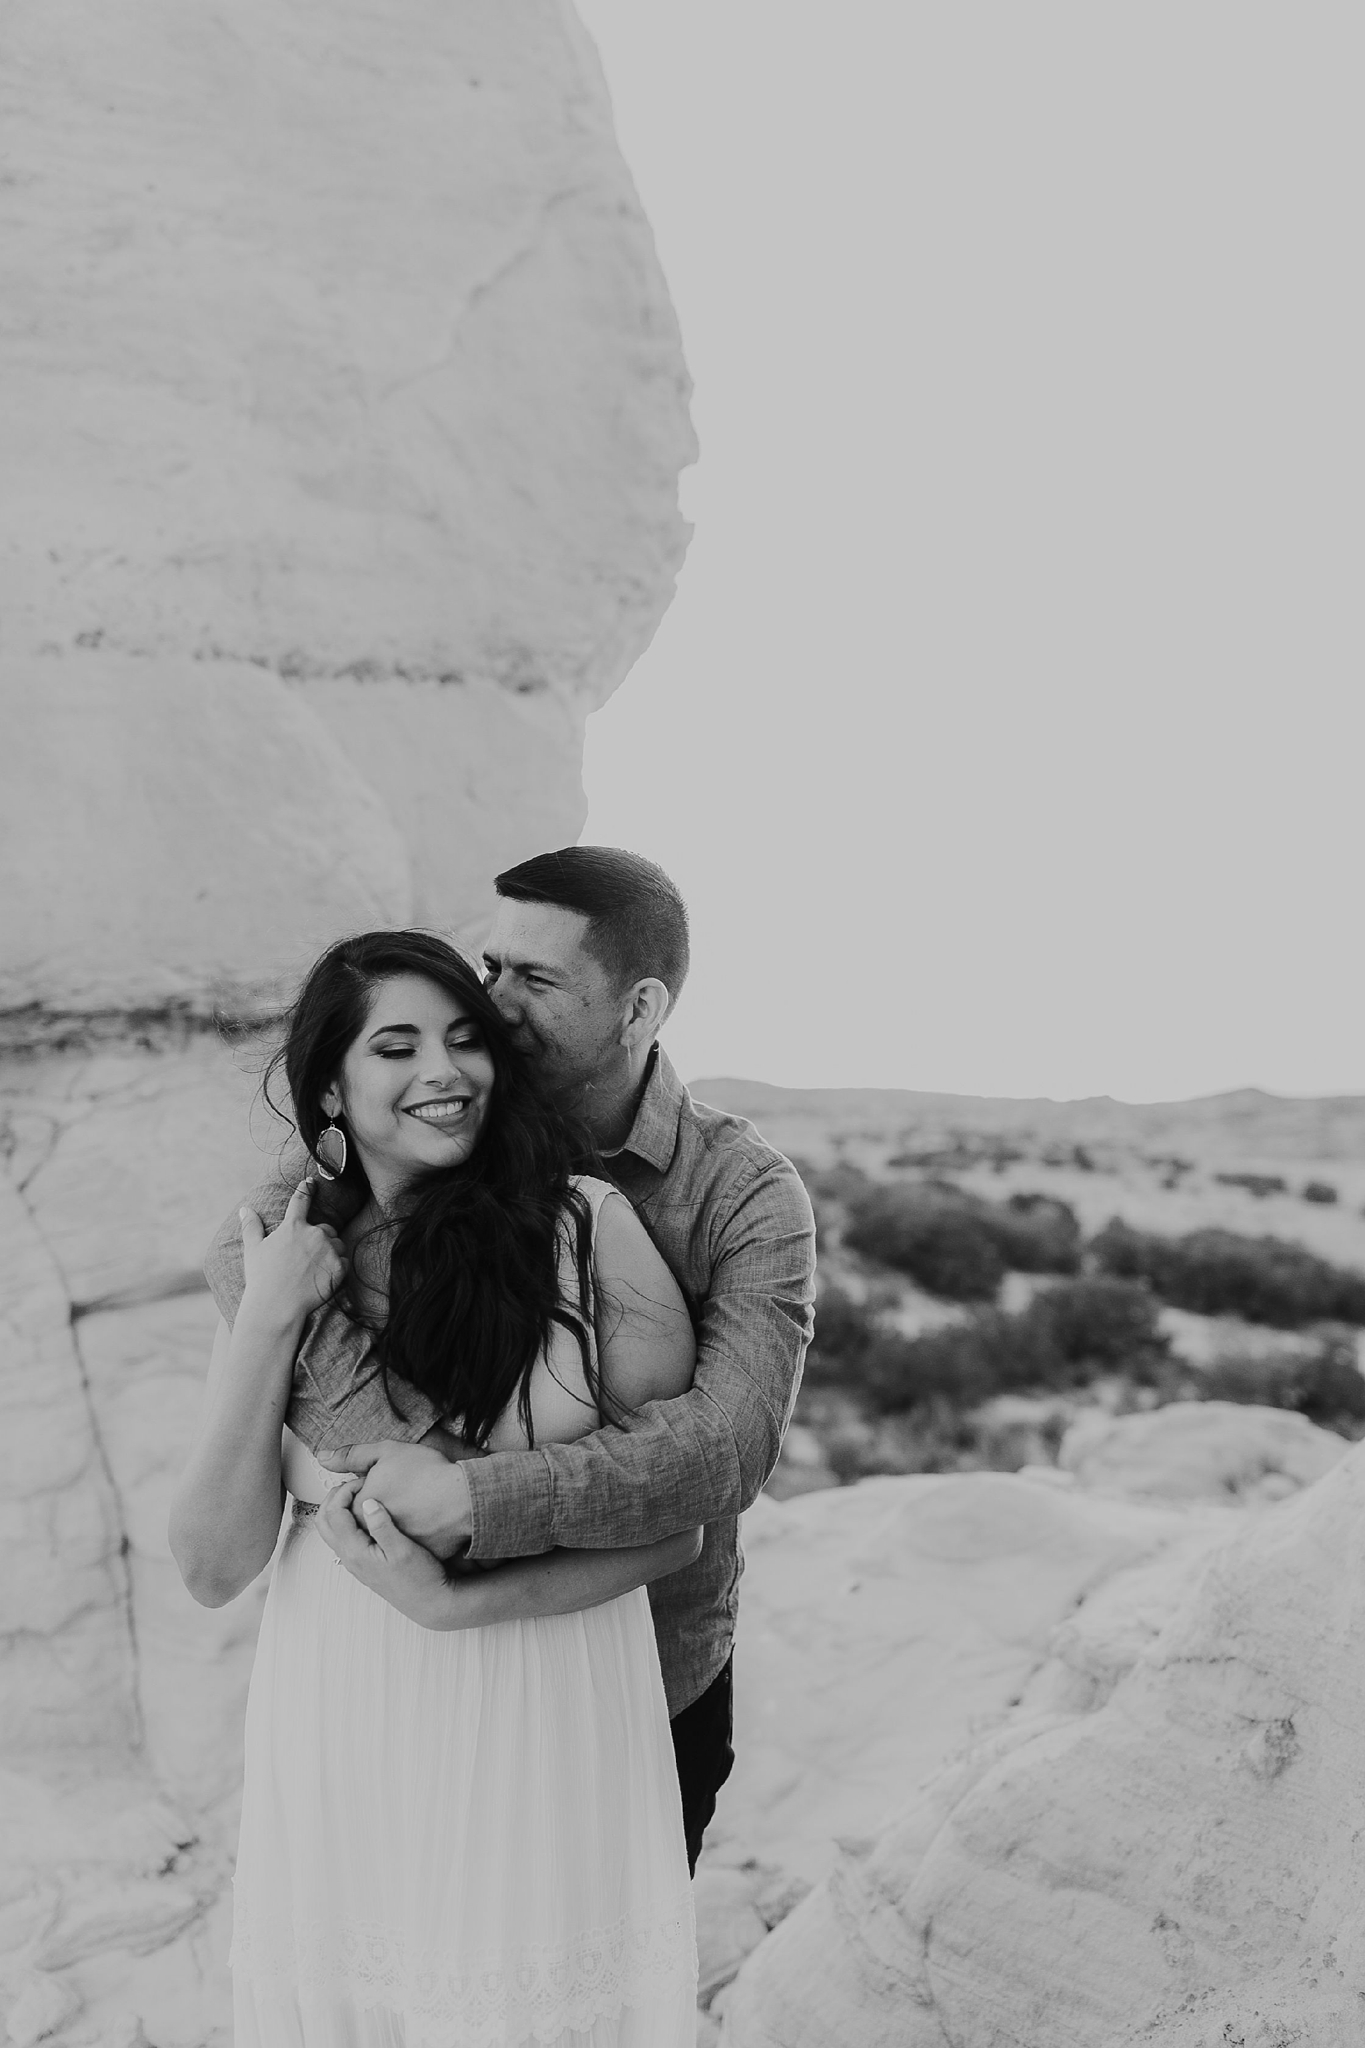 Alicia+lucia+photography+-+albuquerque+wedding+photographer+-+santa+fe+wedding+photography+-+new+mexico+wedding+photographer+-+new+mexico+wedding+-+new+mexico+engagement+-+white+mesa+engagement+-+desert+engagement_0007.jpg